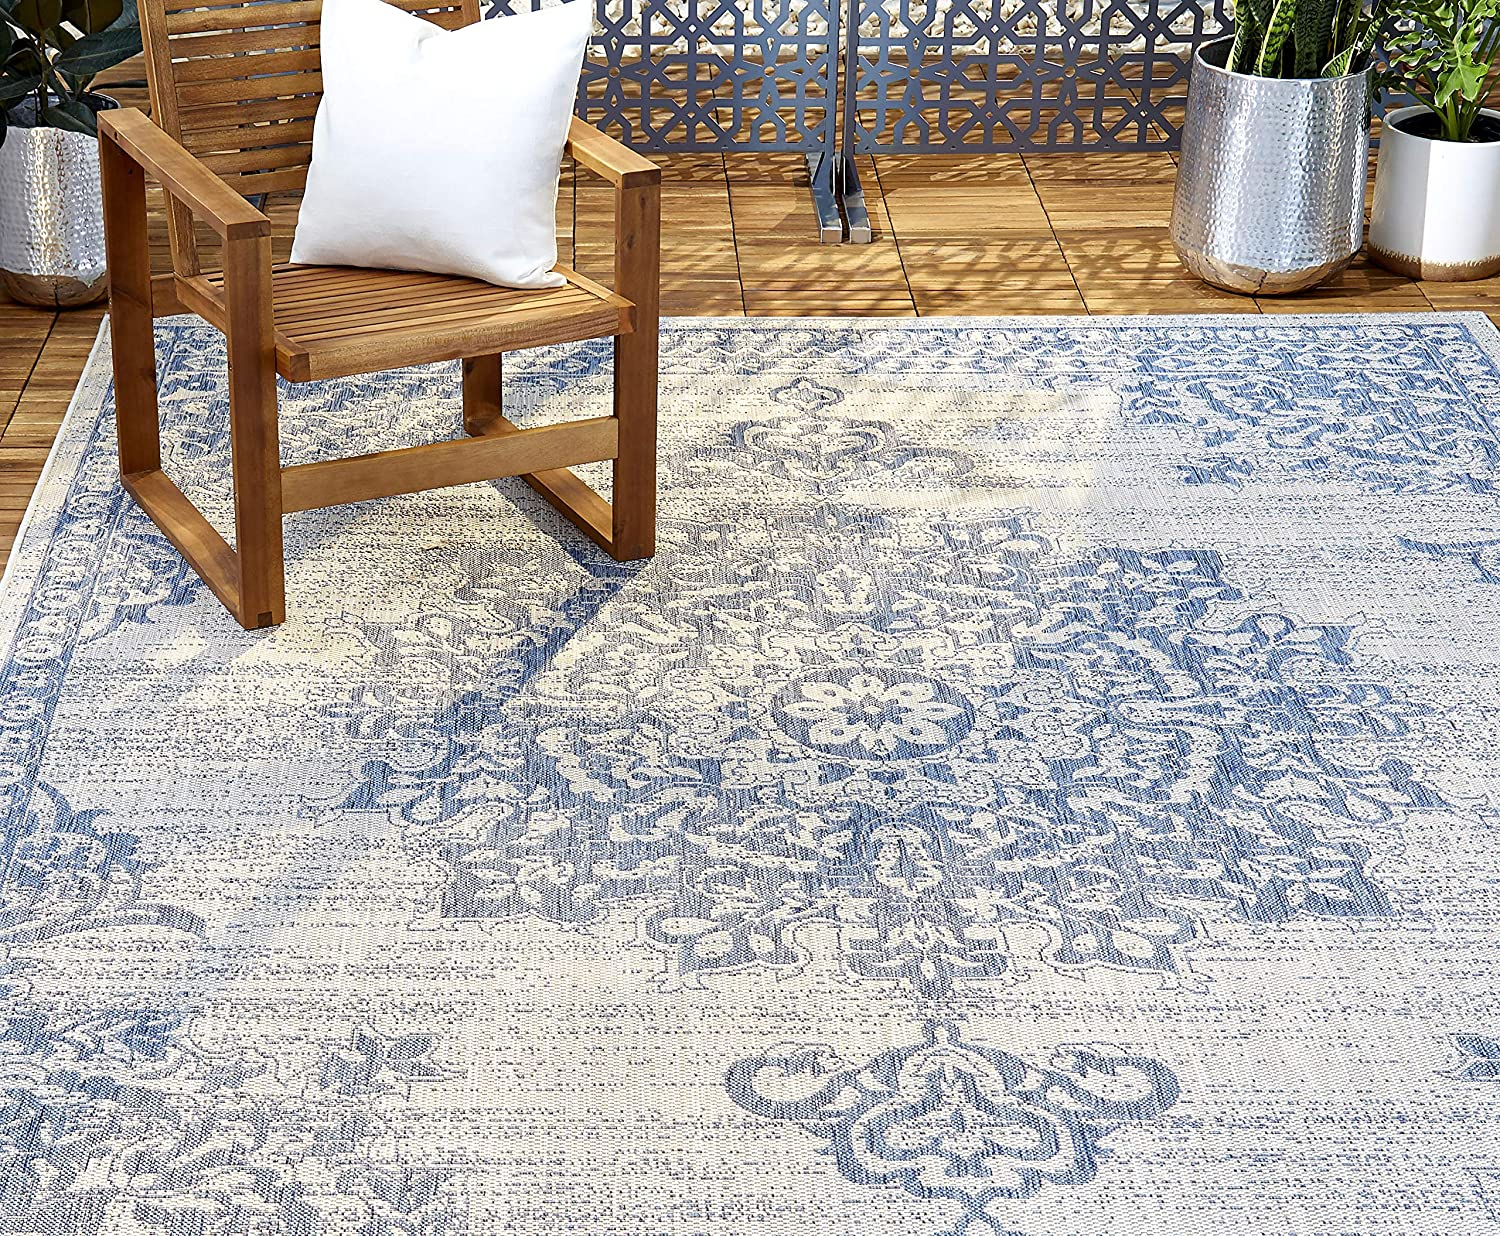 "Home Dynamix Nicole Miller Patio Country Azalea Indoor/Outdoor Area Rug 7'9""x10'2"", Traditional Medallion Gray/Blue"